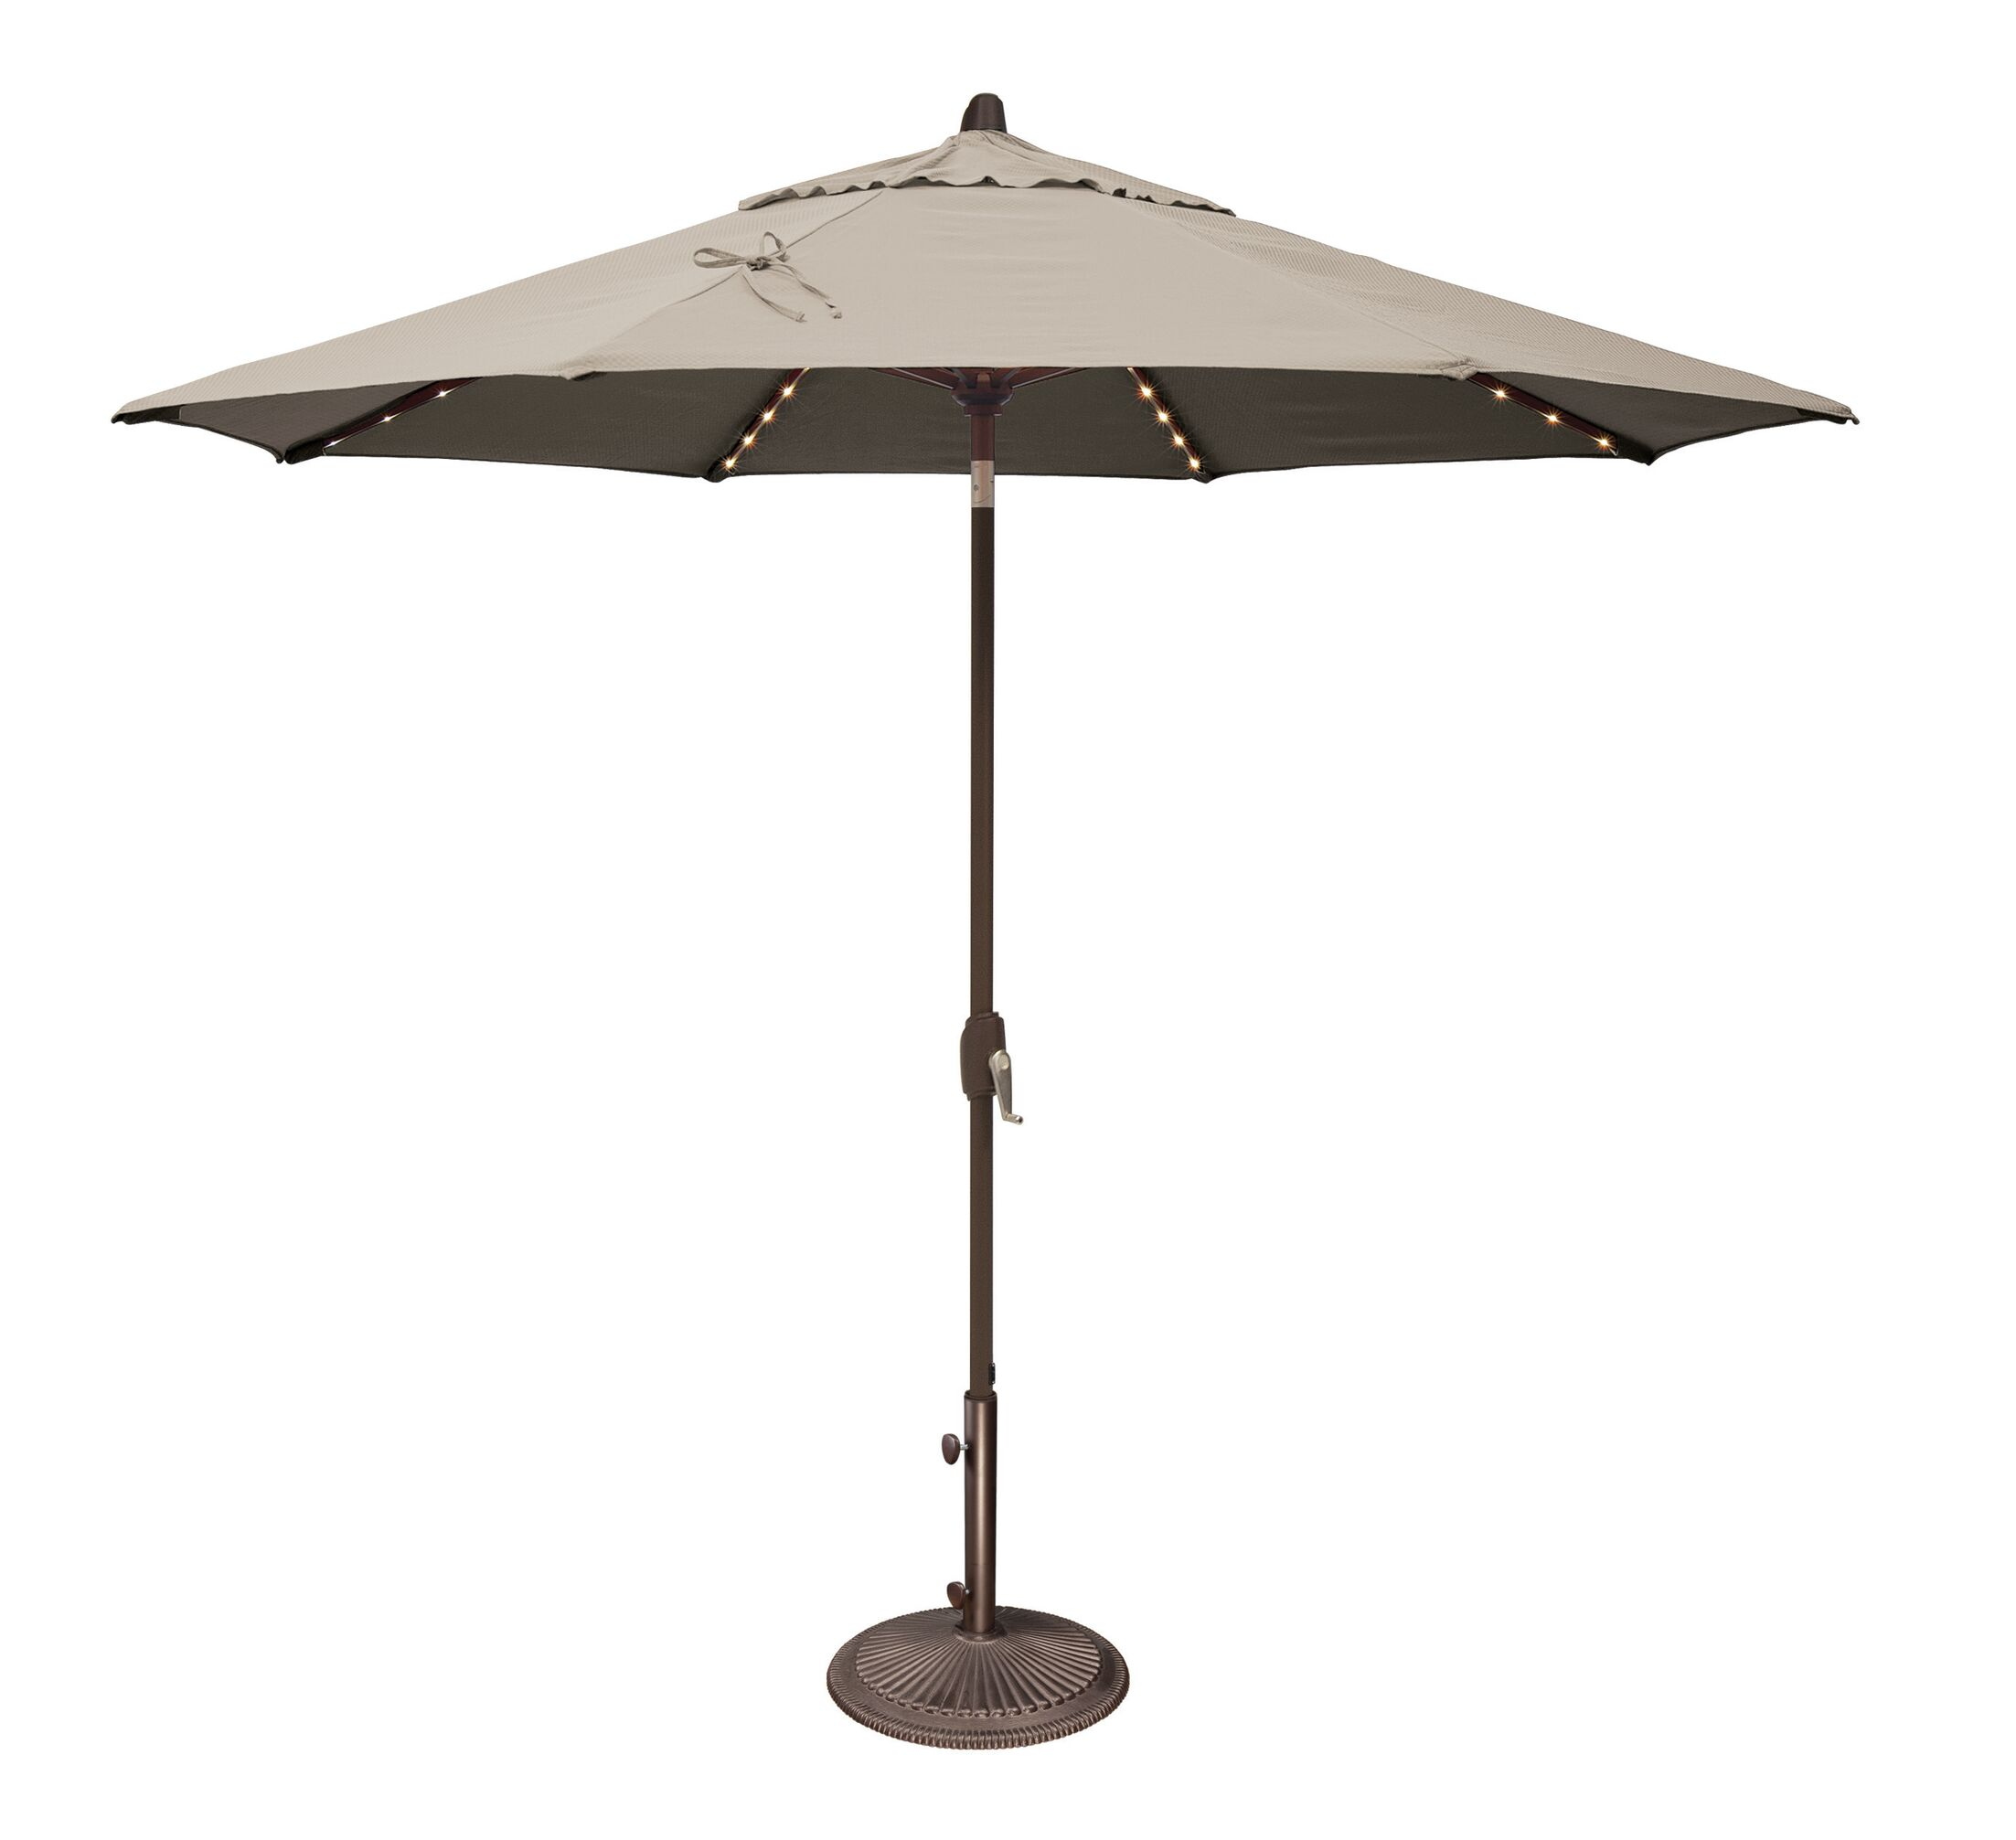 Lanai 9' Lighted Umbrella Fabric: Sunbrella / Antique Beige